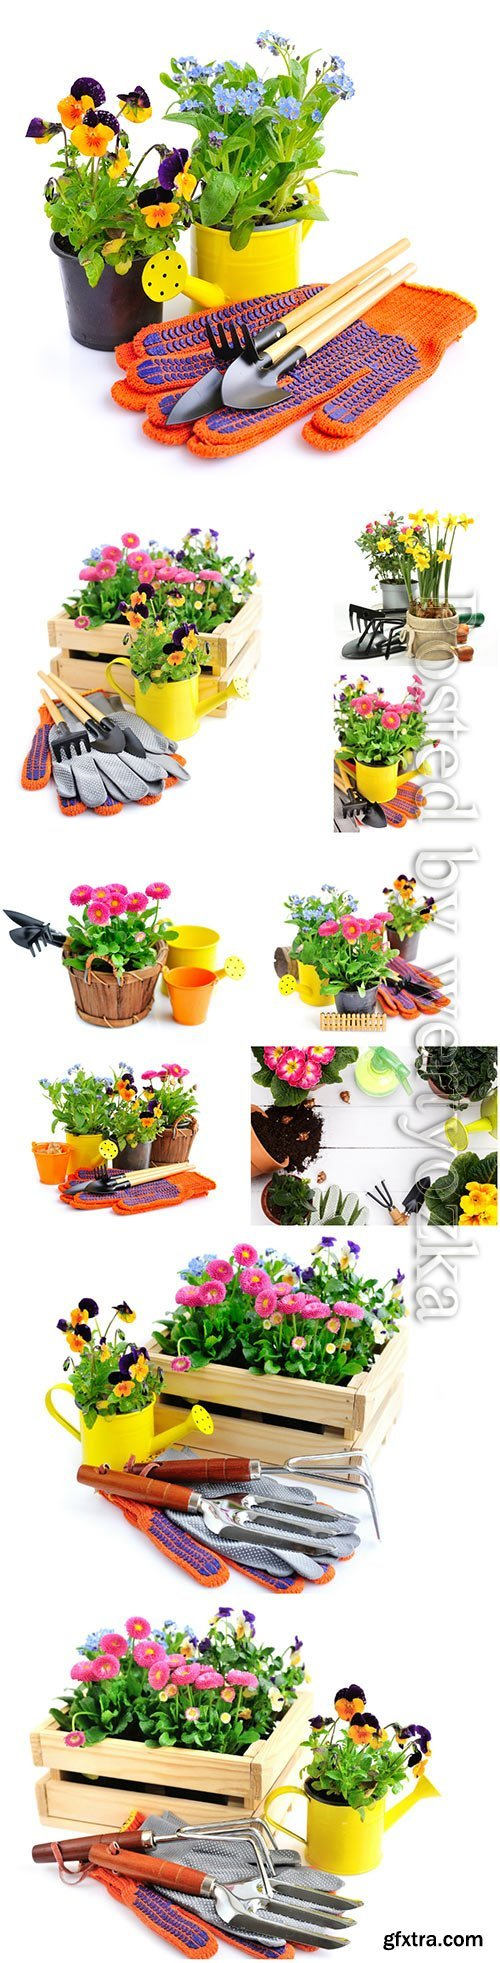 Gardening tools and spring flowers